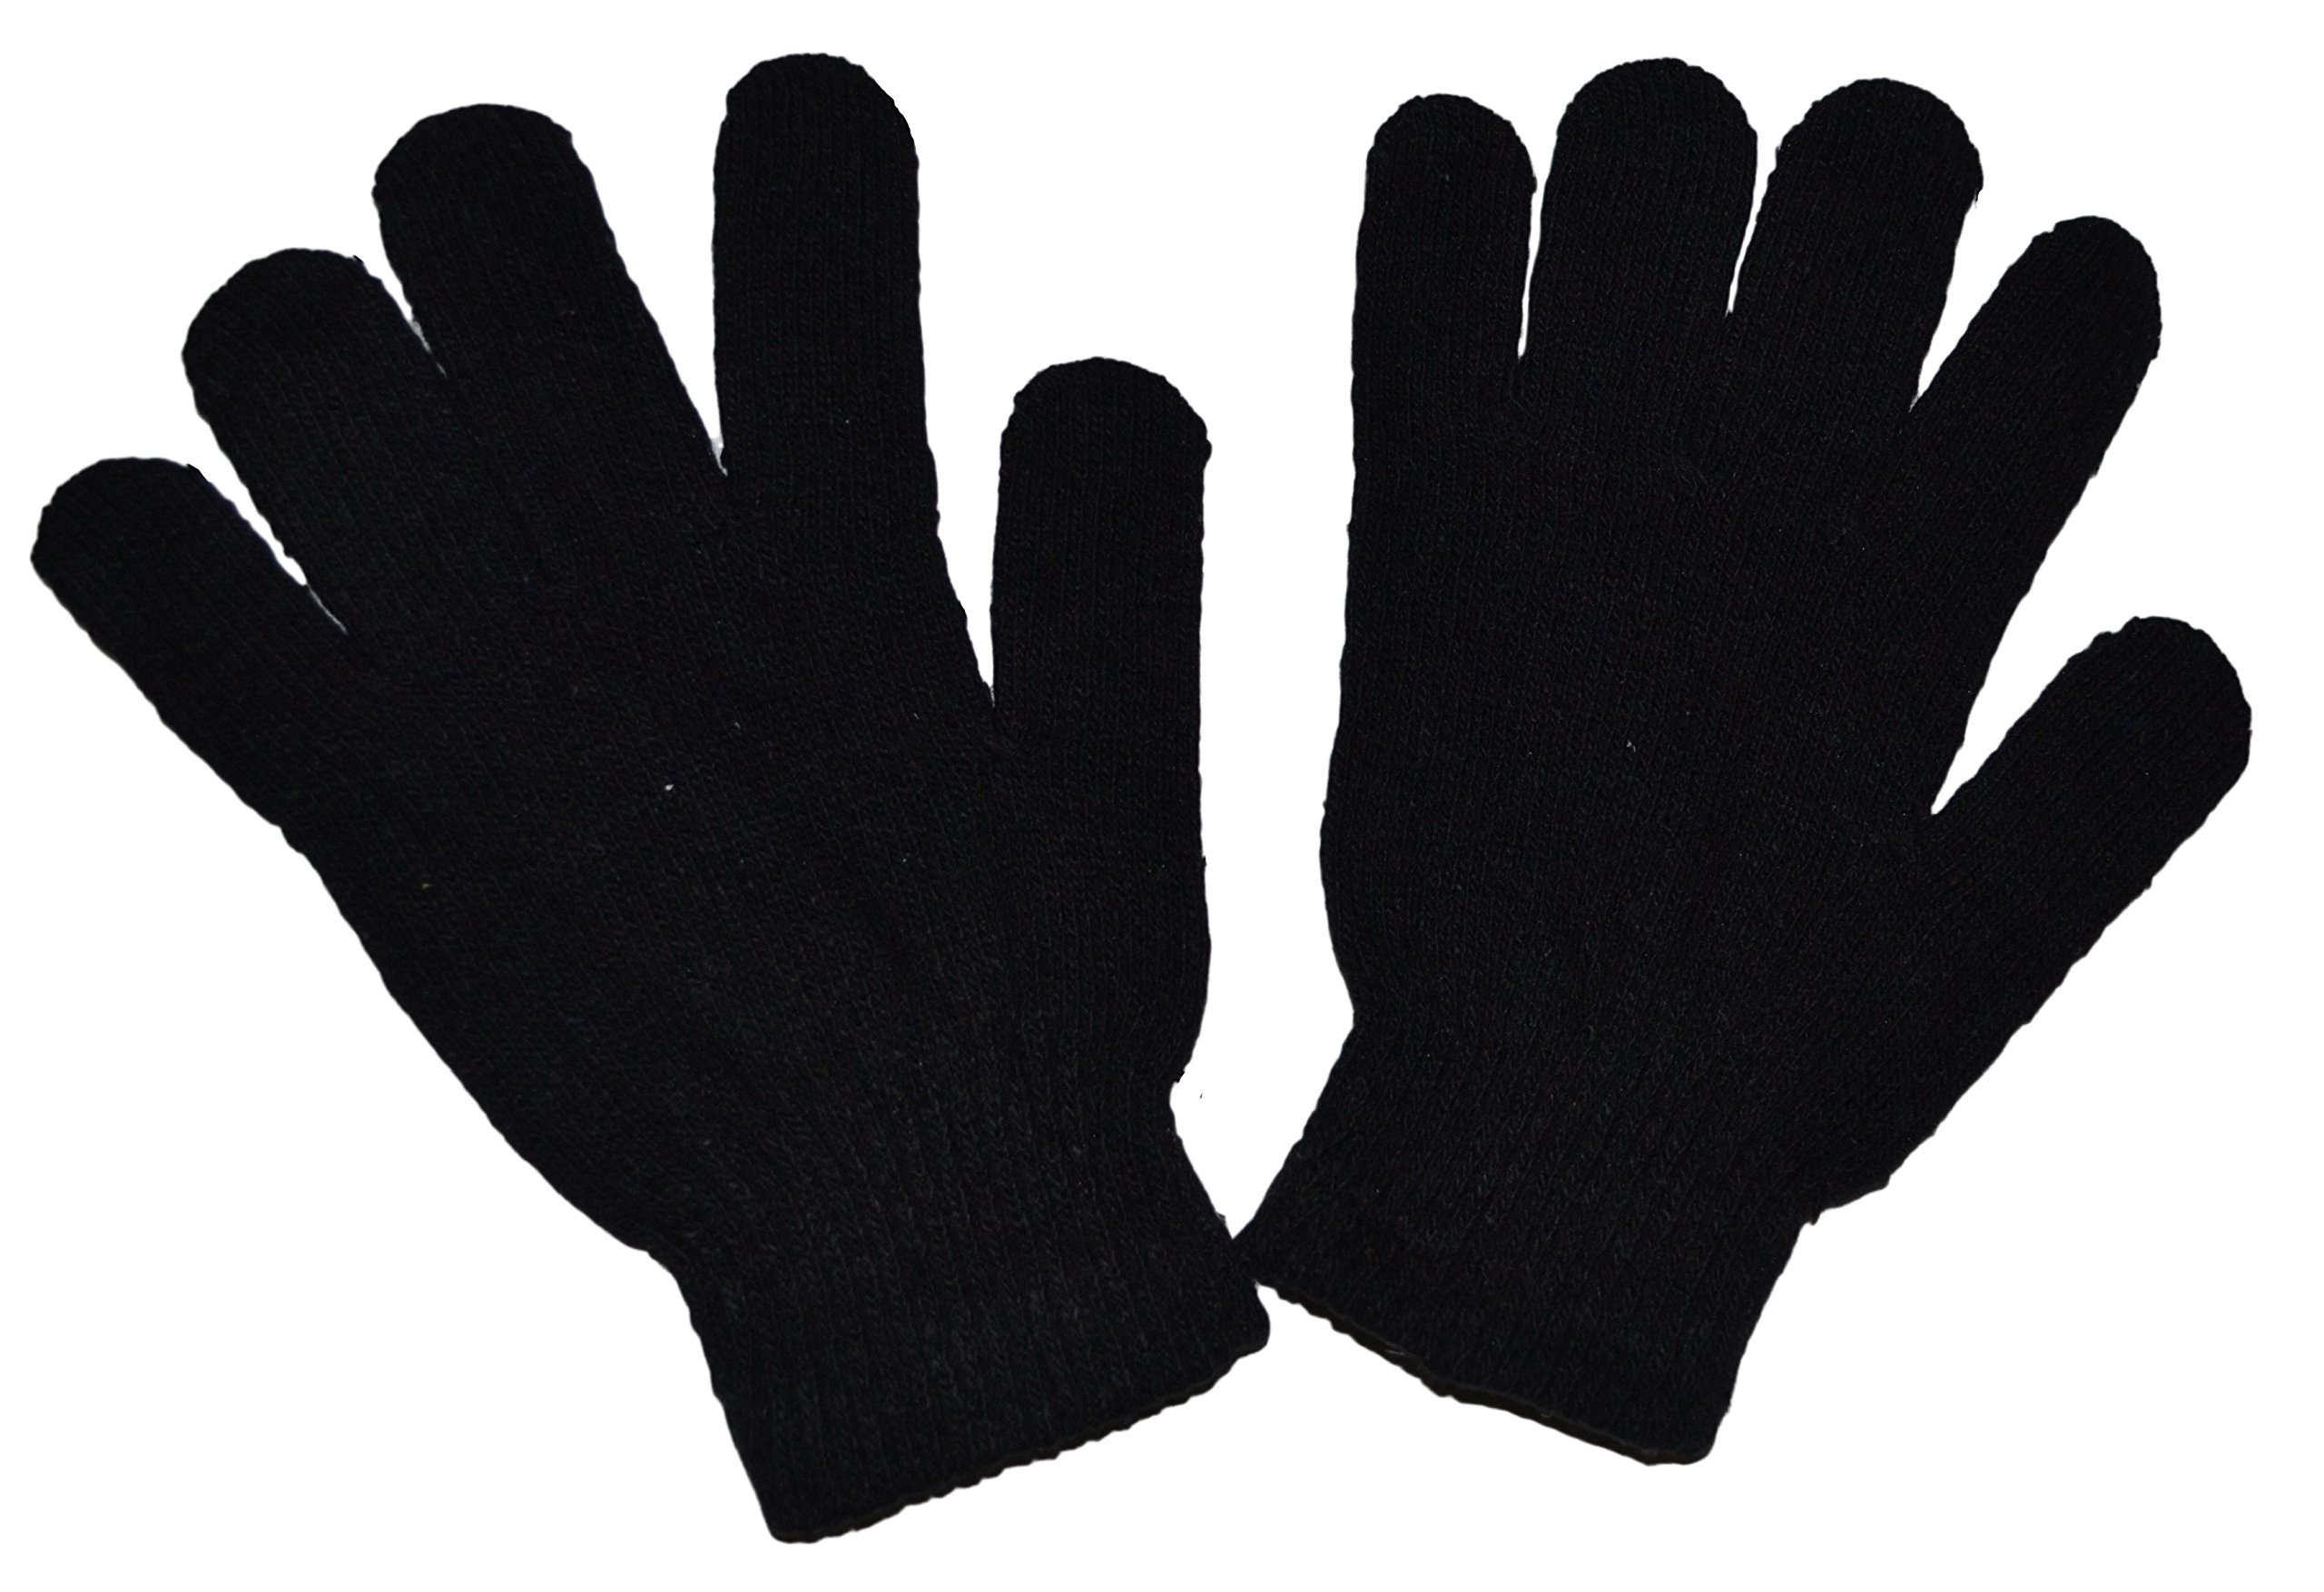 OPT Brand. 12 Pairs Magic Knit Gloves Stretch Winter Warm Plain Gloves One Size Fits Most Wholesale Lot. From New York. USA Trademark Registered: 86522969.